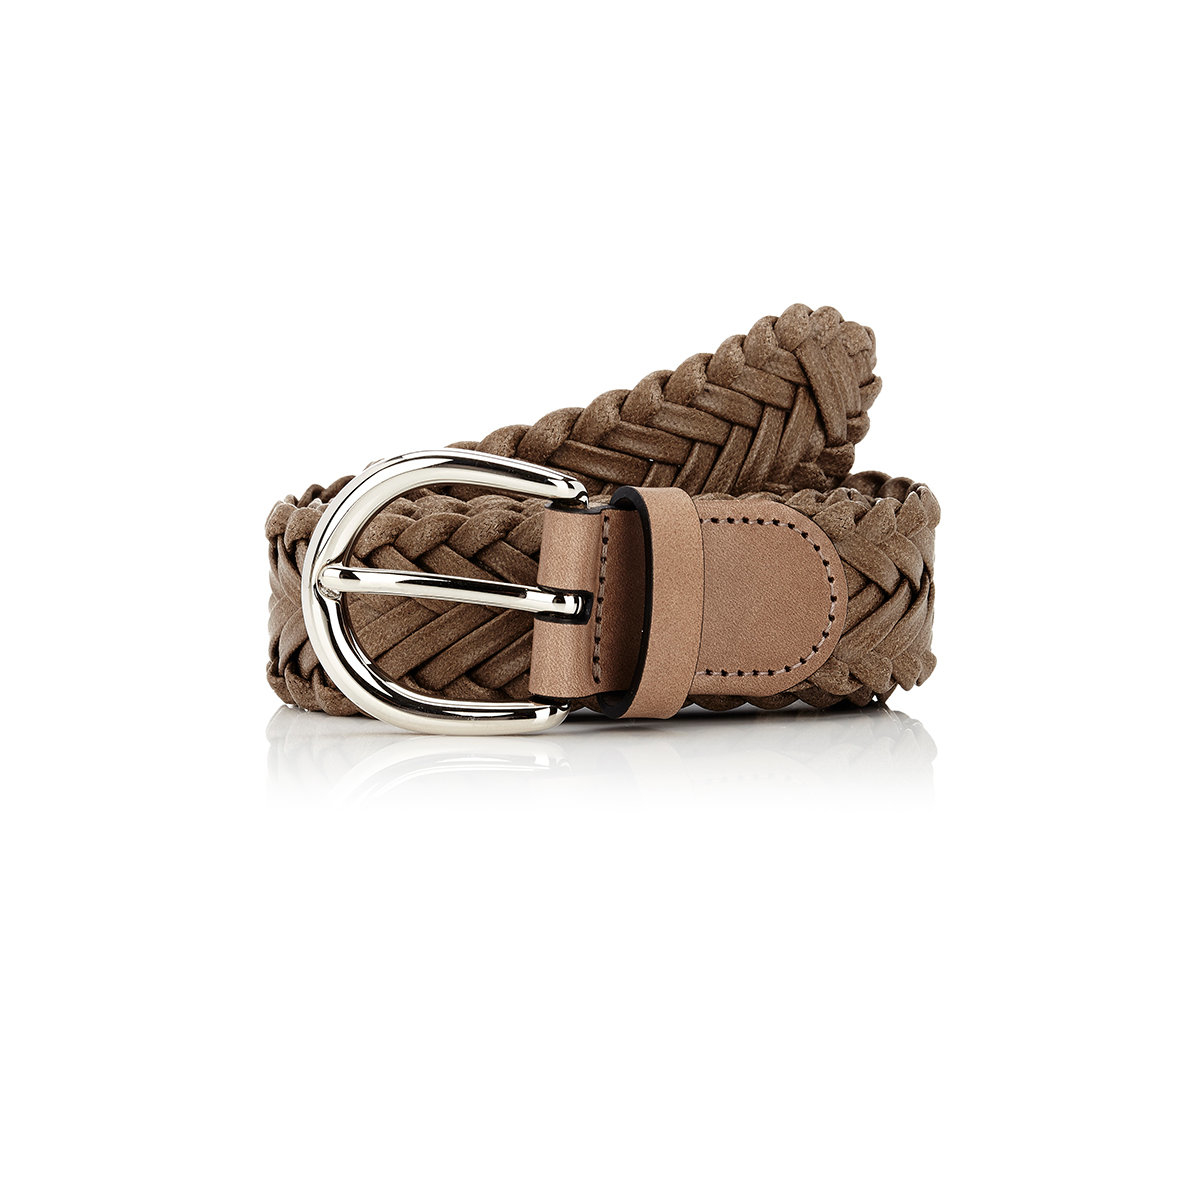 The Sahara Braided belt, in Espresso brown leather, is a favorite. Notice the sweet detail on the silver plated buckle. Belt Width: 2